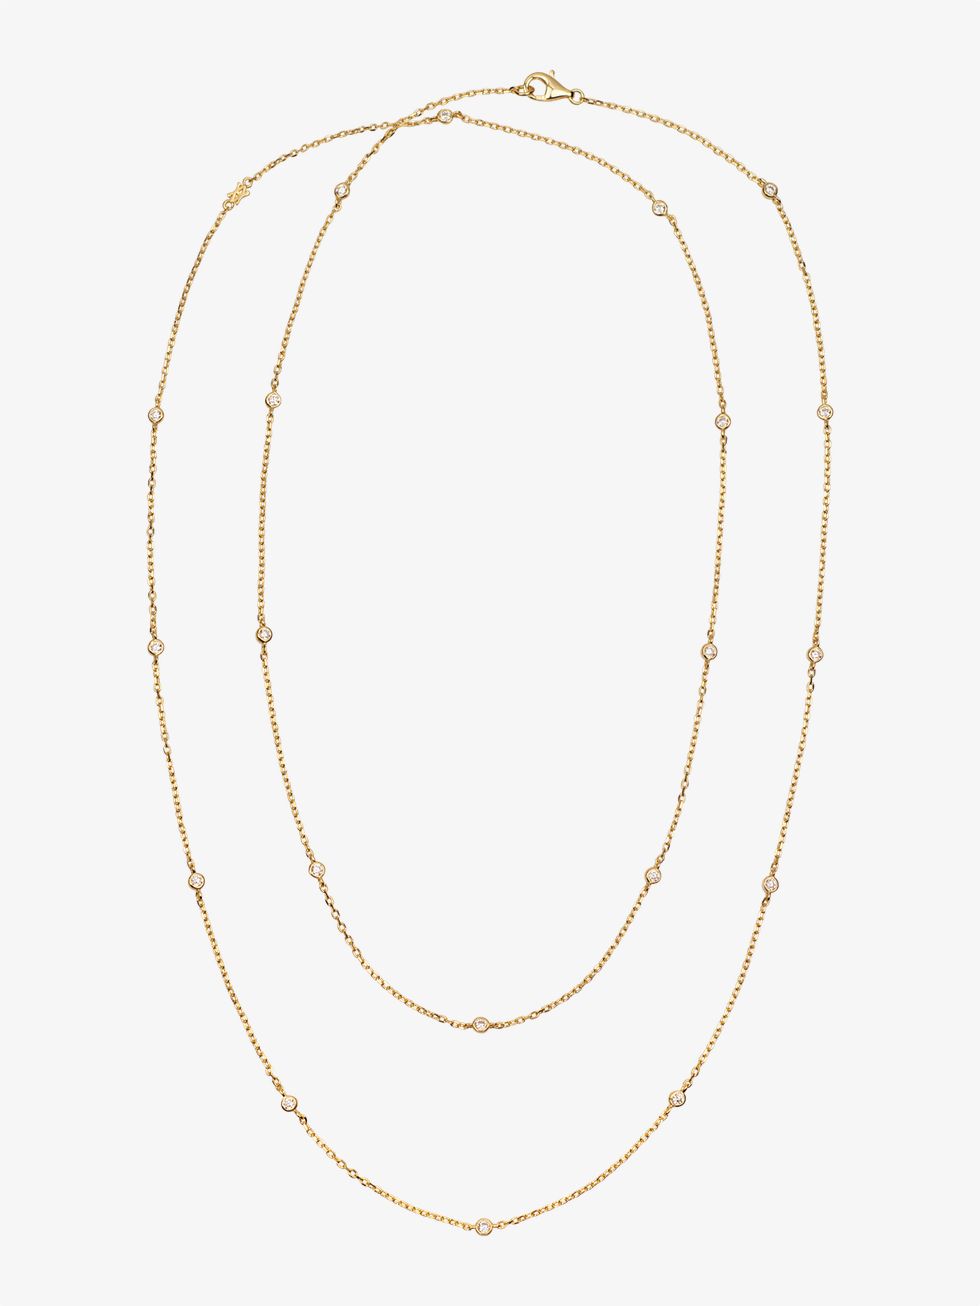 Collar long cz gold 3